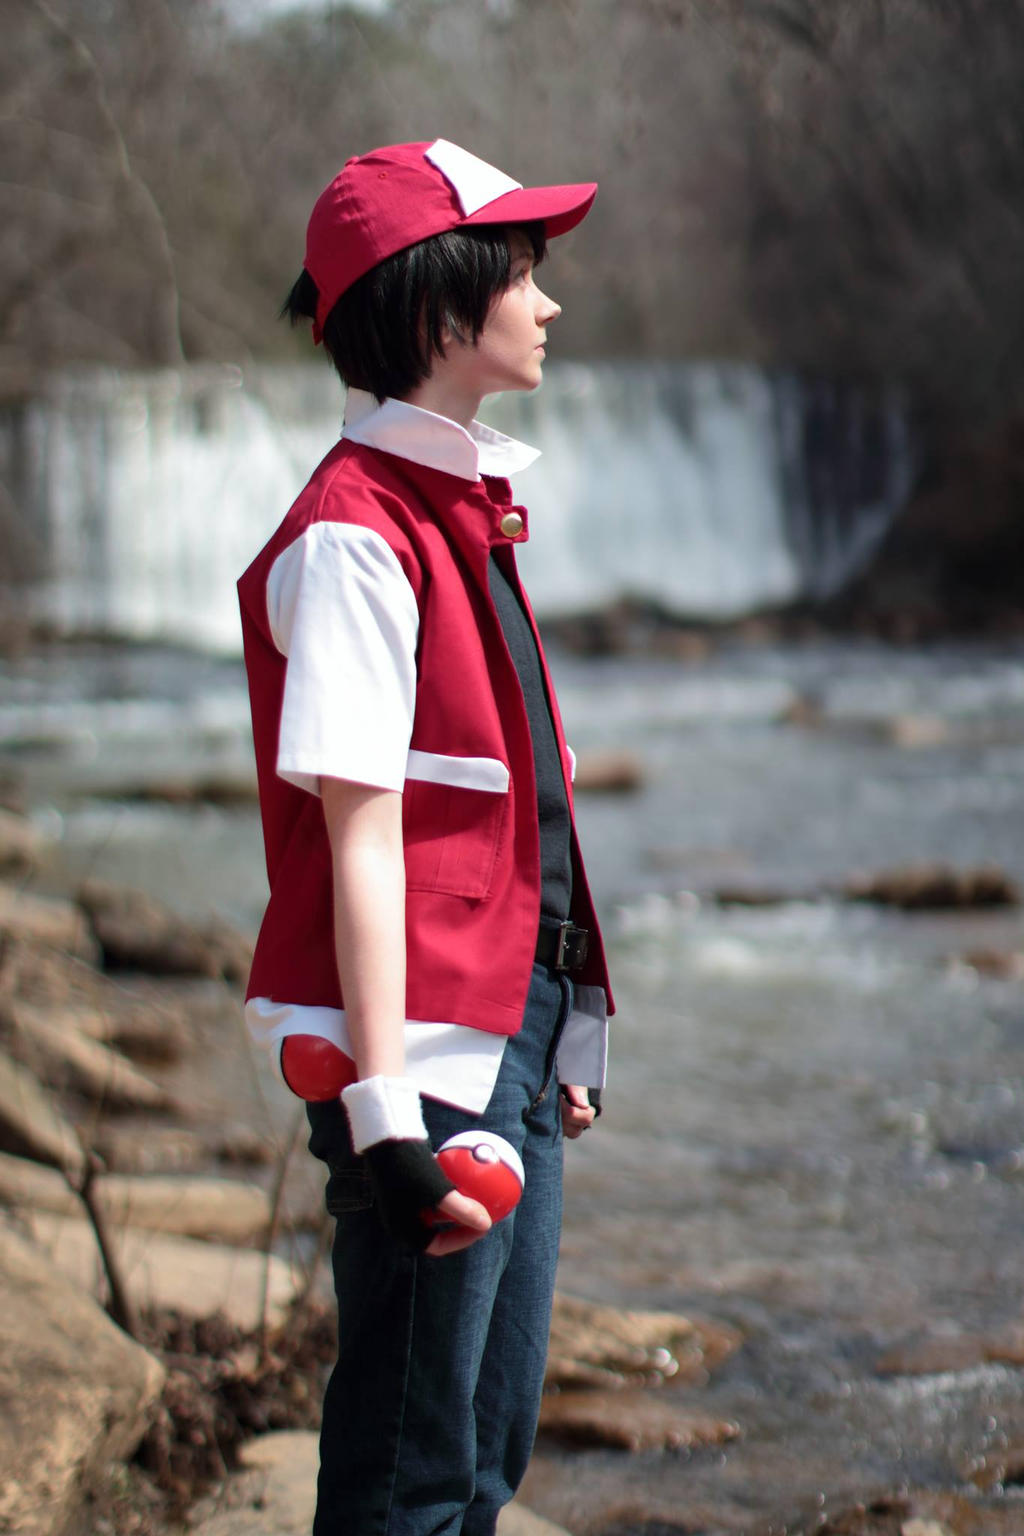 twitch plays pokemon red cosplay 6 by ougra on deviantart